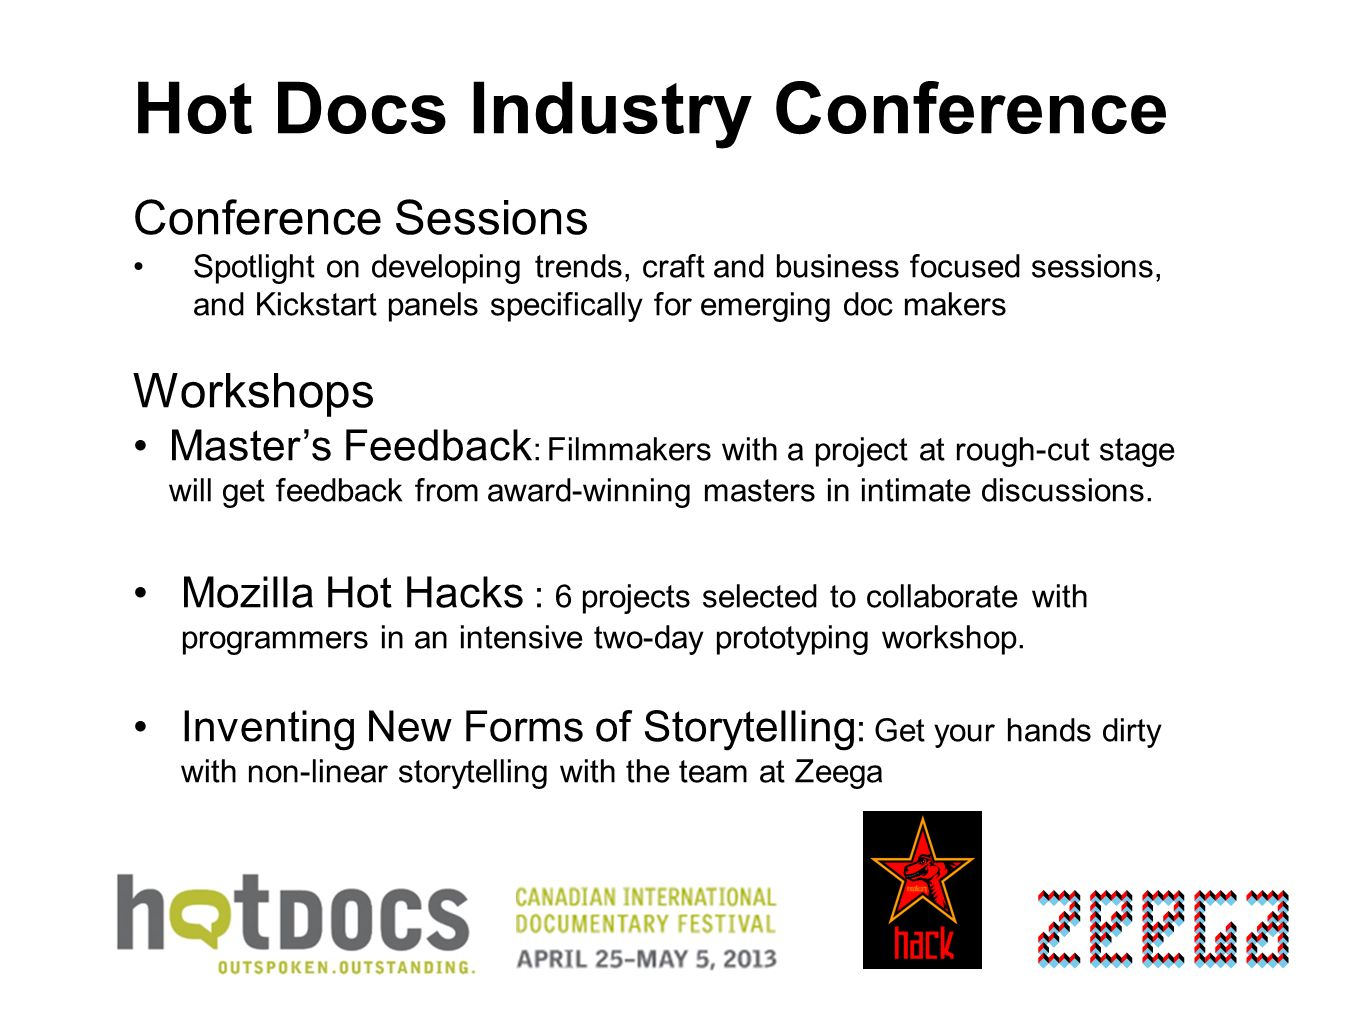 Digital Assets: Festival Content Hot Docs annually produces hundreds of hours of interviews with attending festival filmmakers and subjects, plus capturing festival public Q&As, and video capture of dozens of industry conference sessions, masterclasses, awards gala, etc.